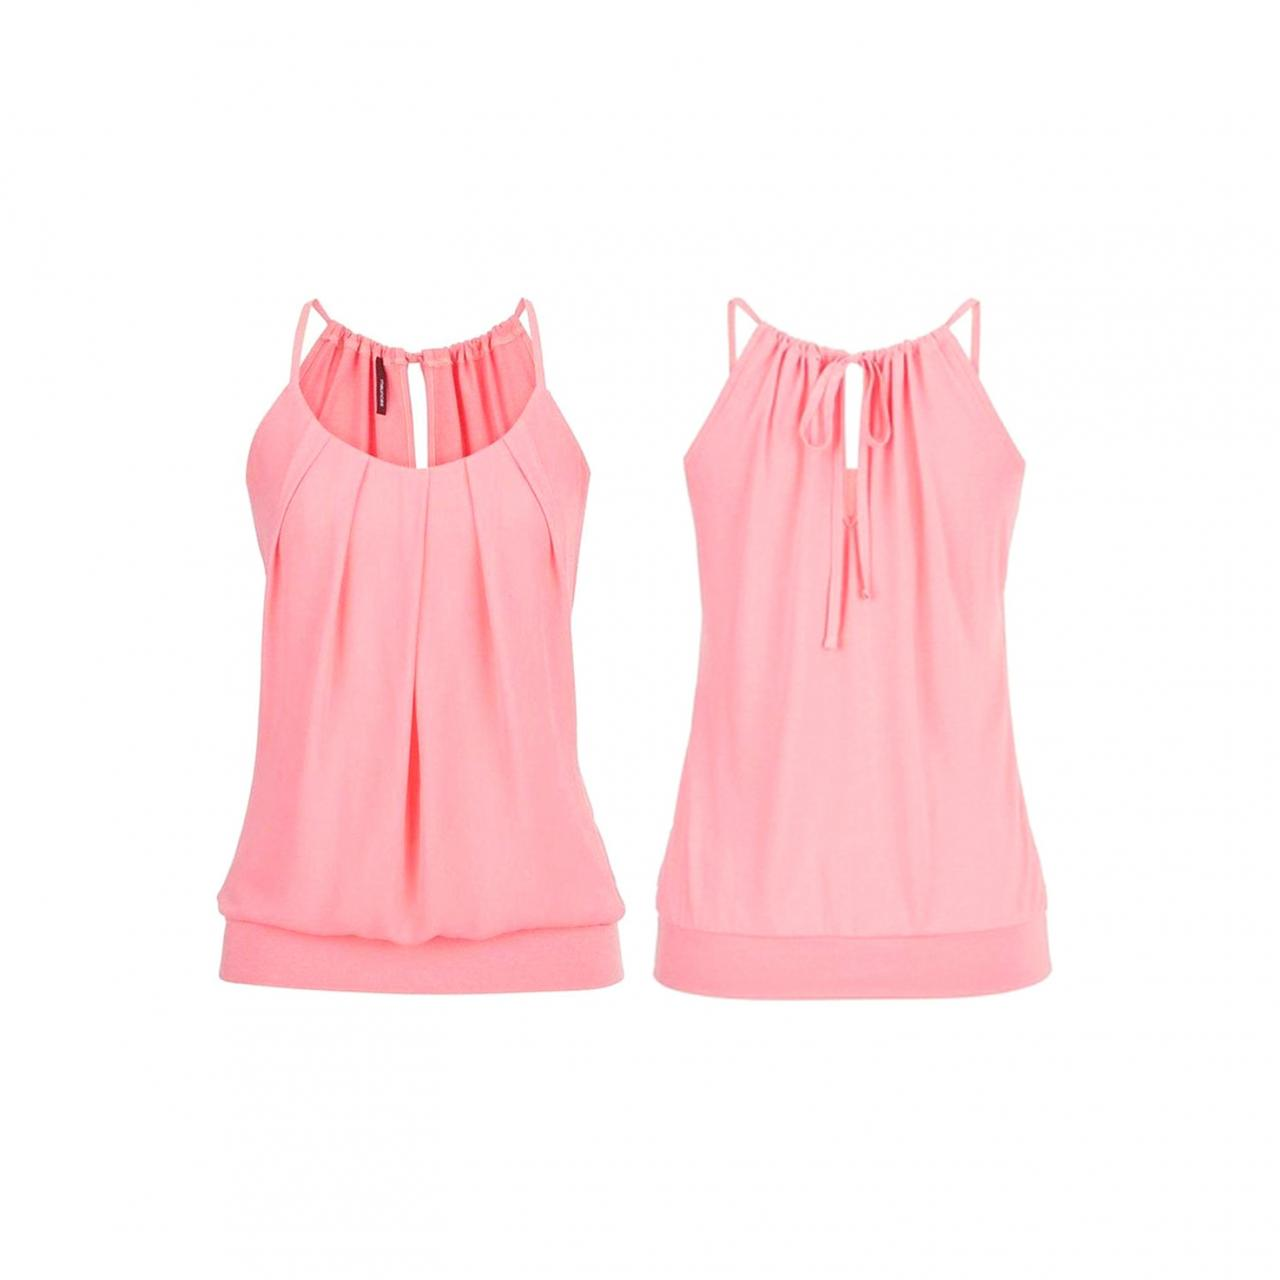 Women Tank Top Summer Casual Ruched Plus Size Loose Sleeveless T Shirts pink